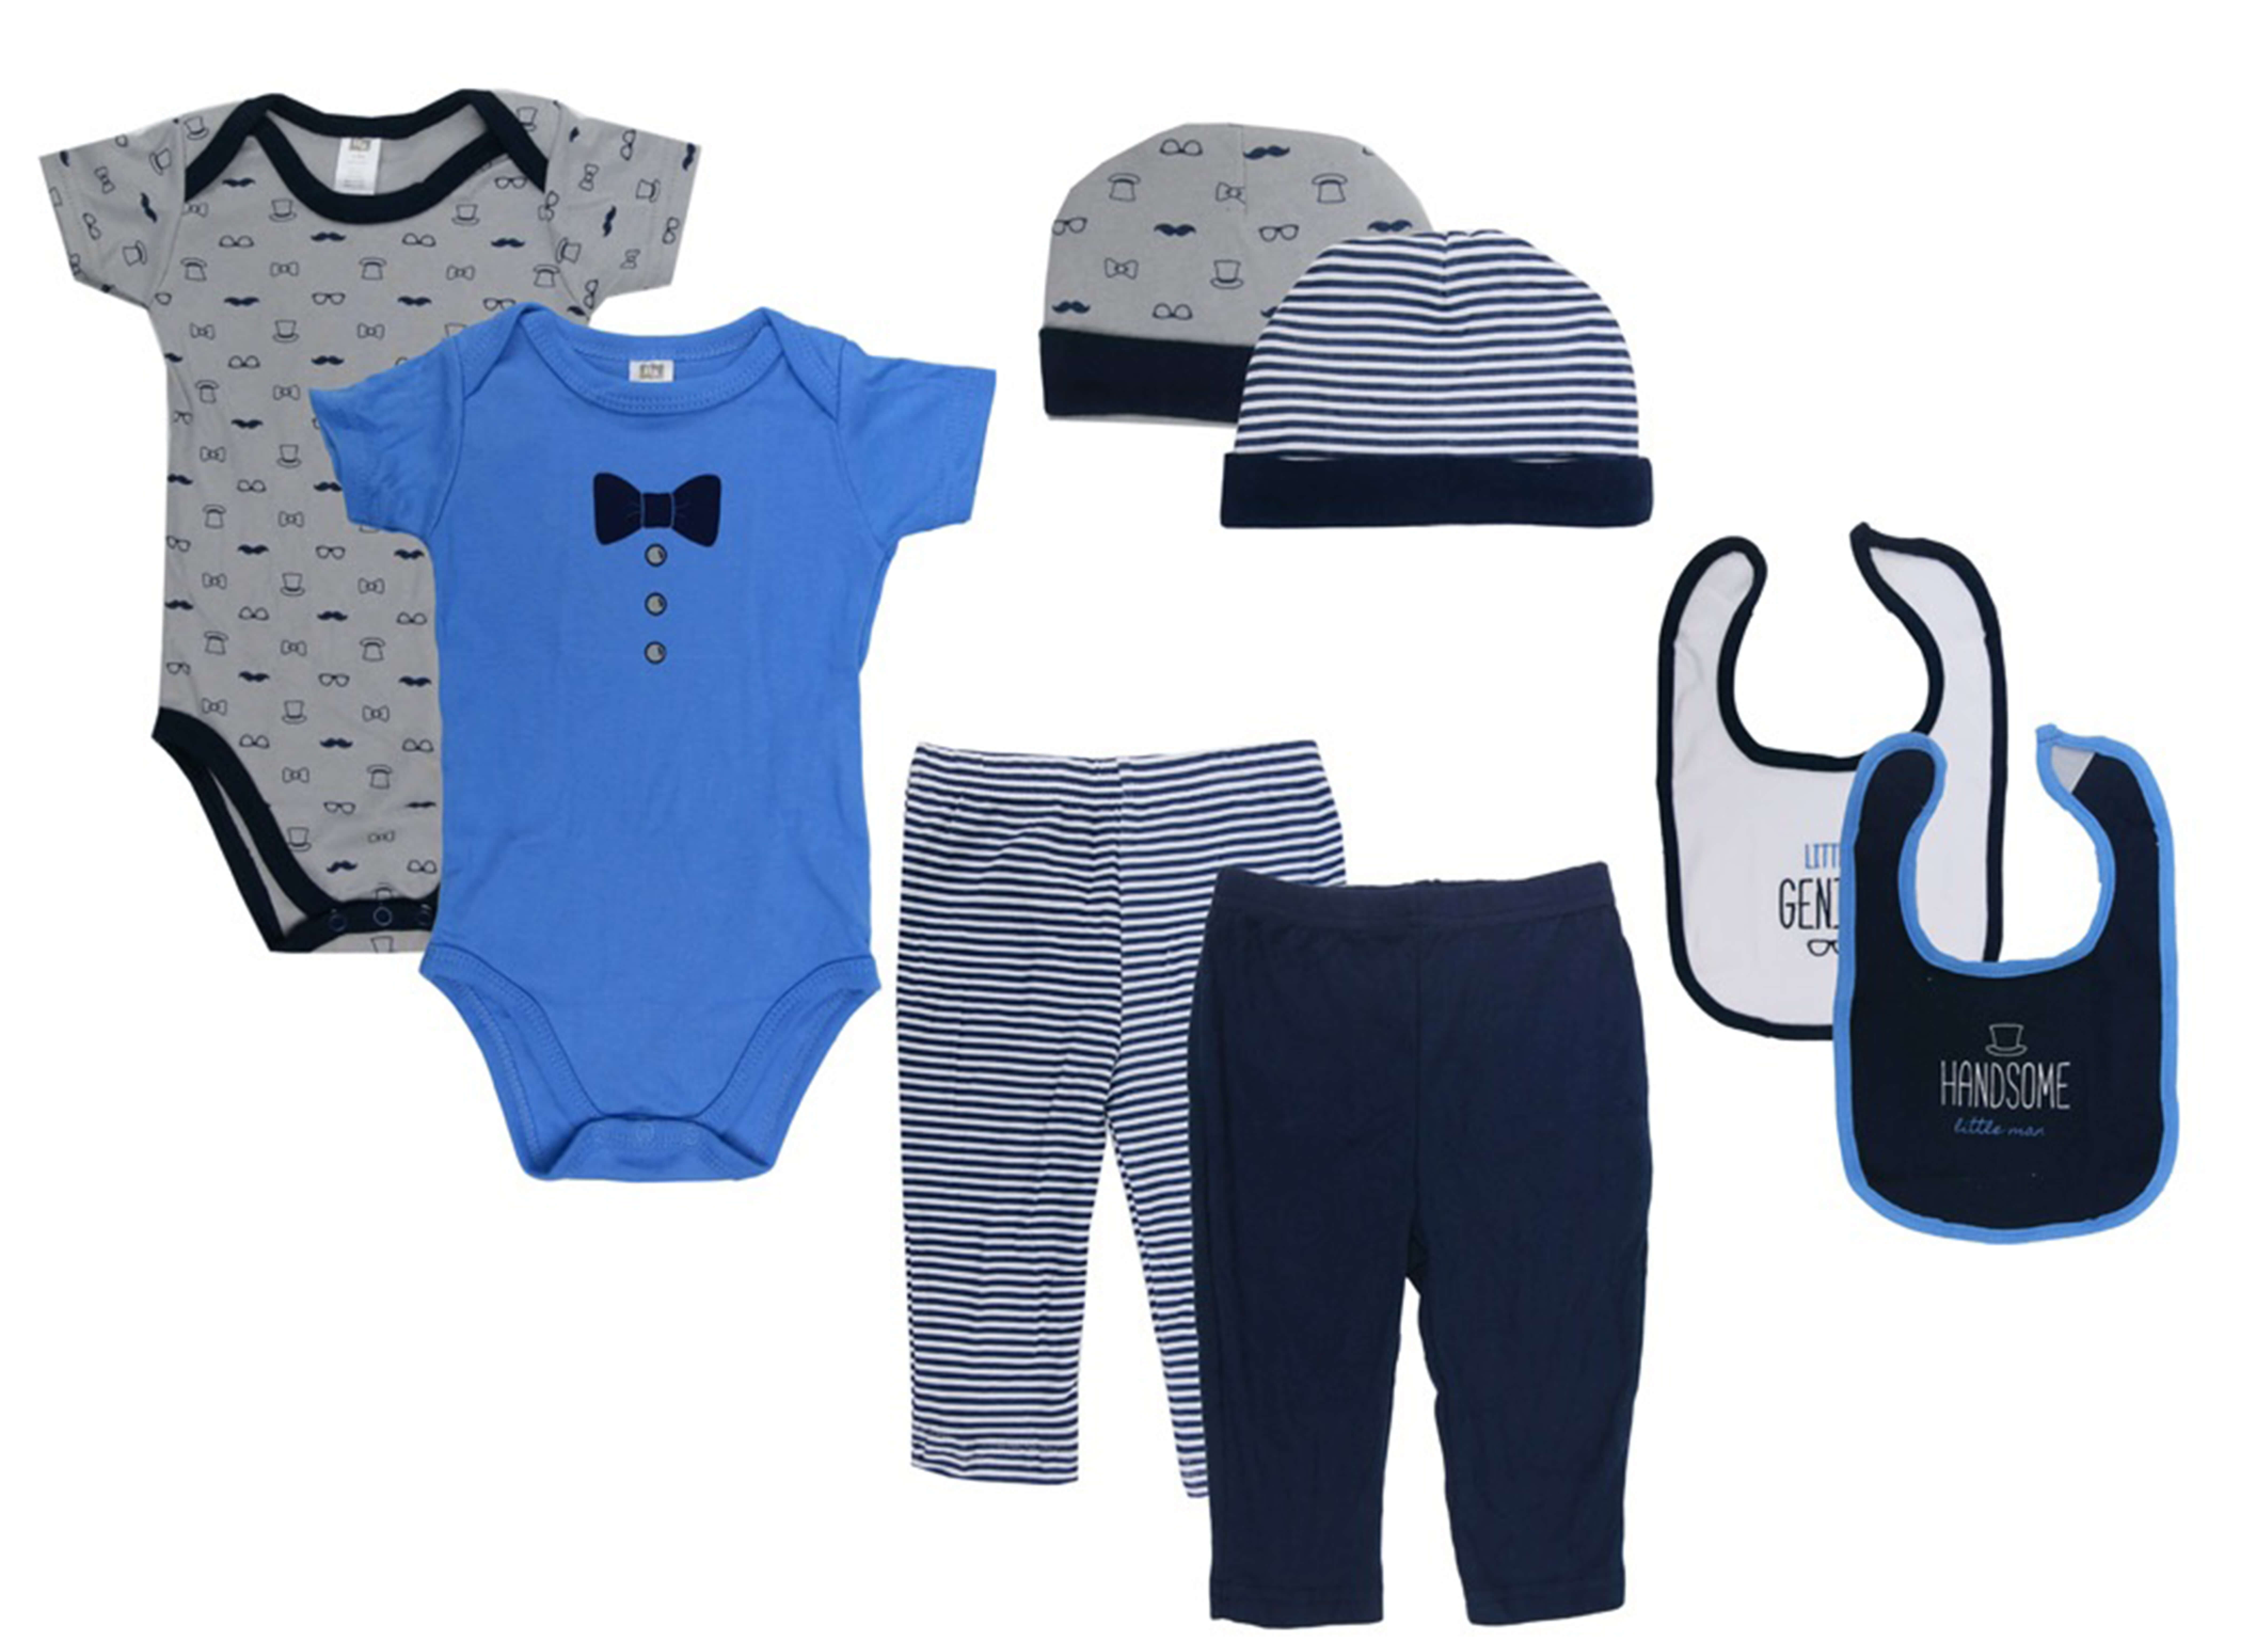 Baby Grow With Me Clothing Gift Set Handsome